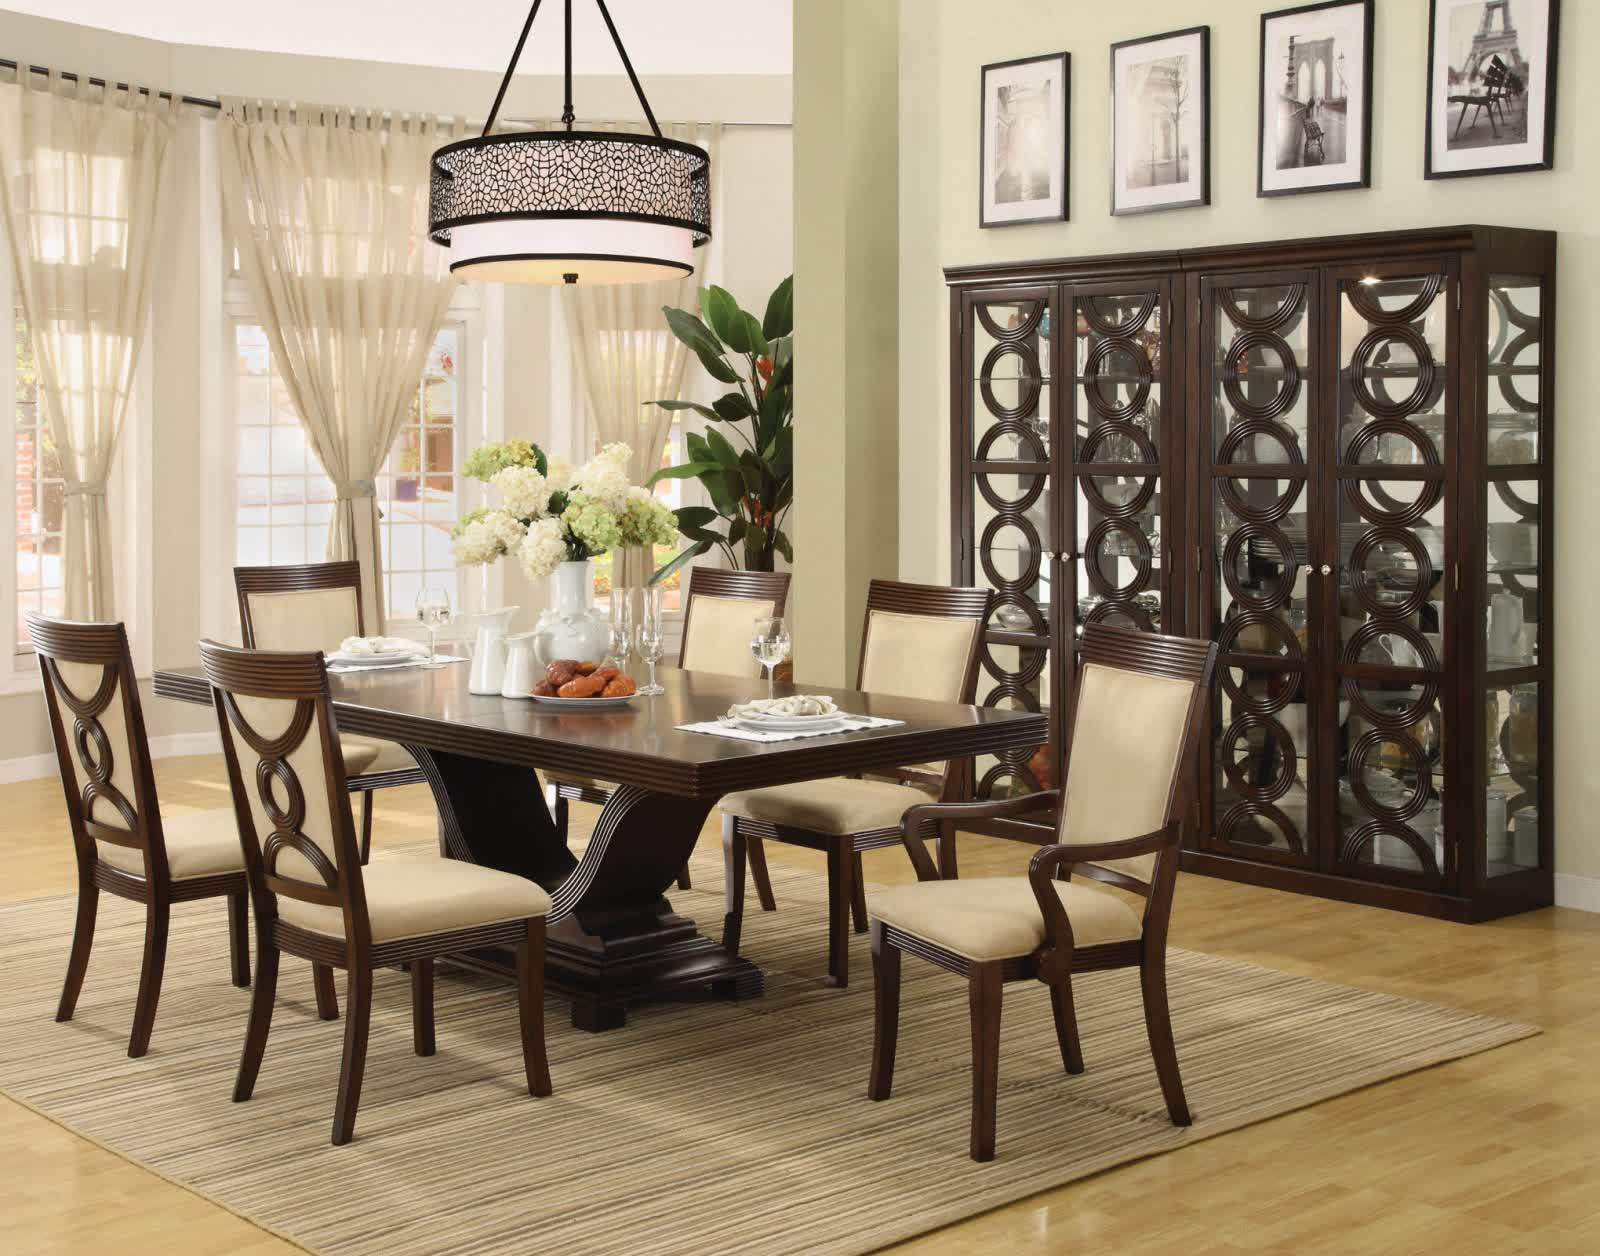 Dining Room Table Decor Enchanting Attractive Centerpieces For Dining Room Tables To Create Design Decoration